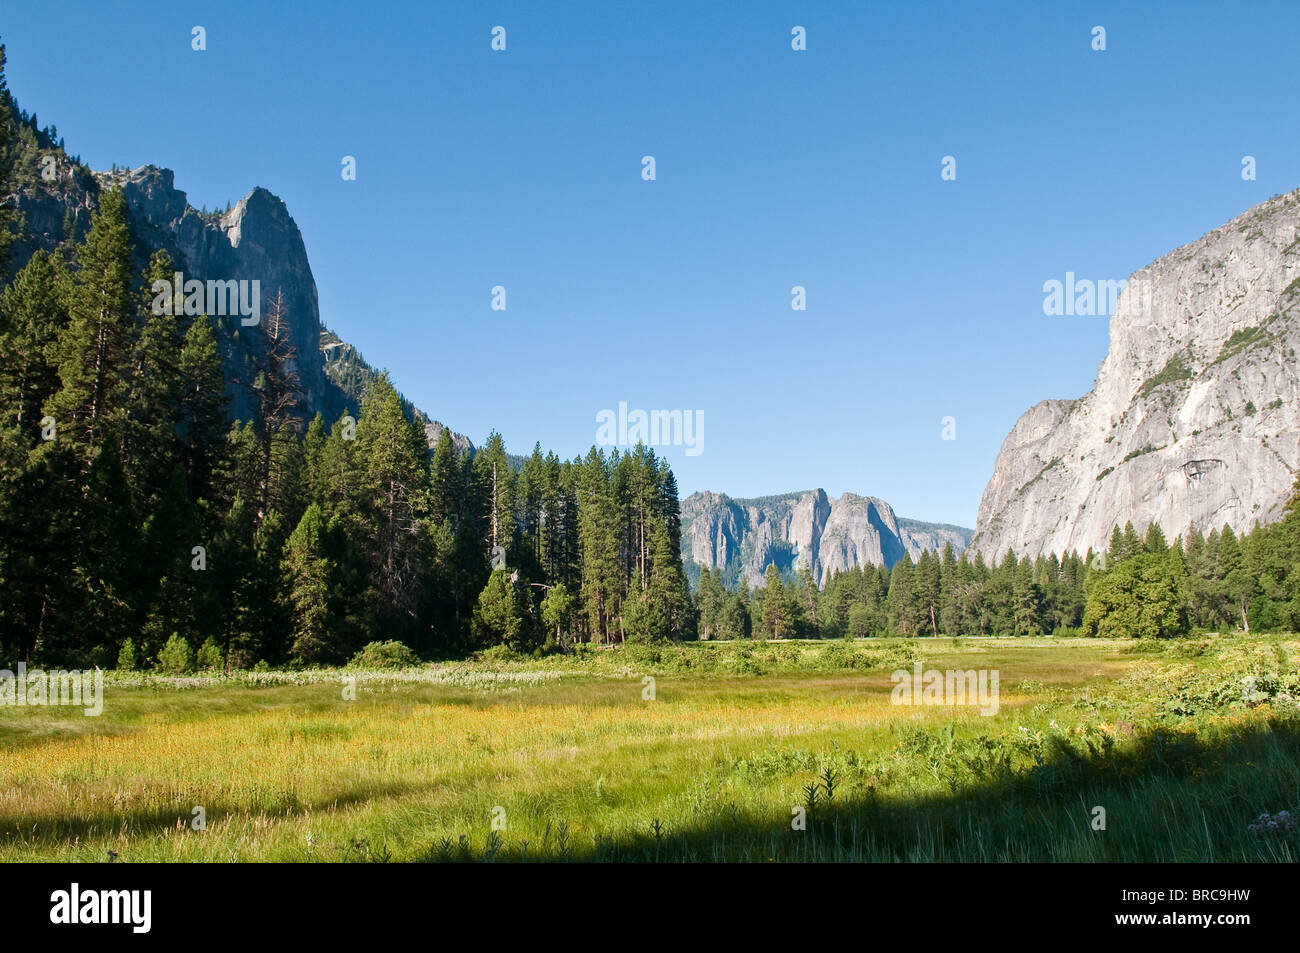 Typical landscape in Yosemite National Park, California, USA - Stock Image